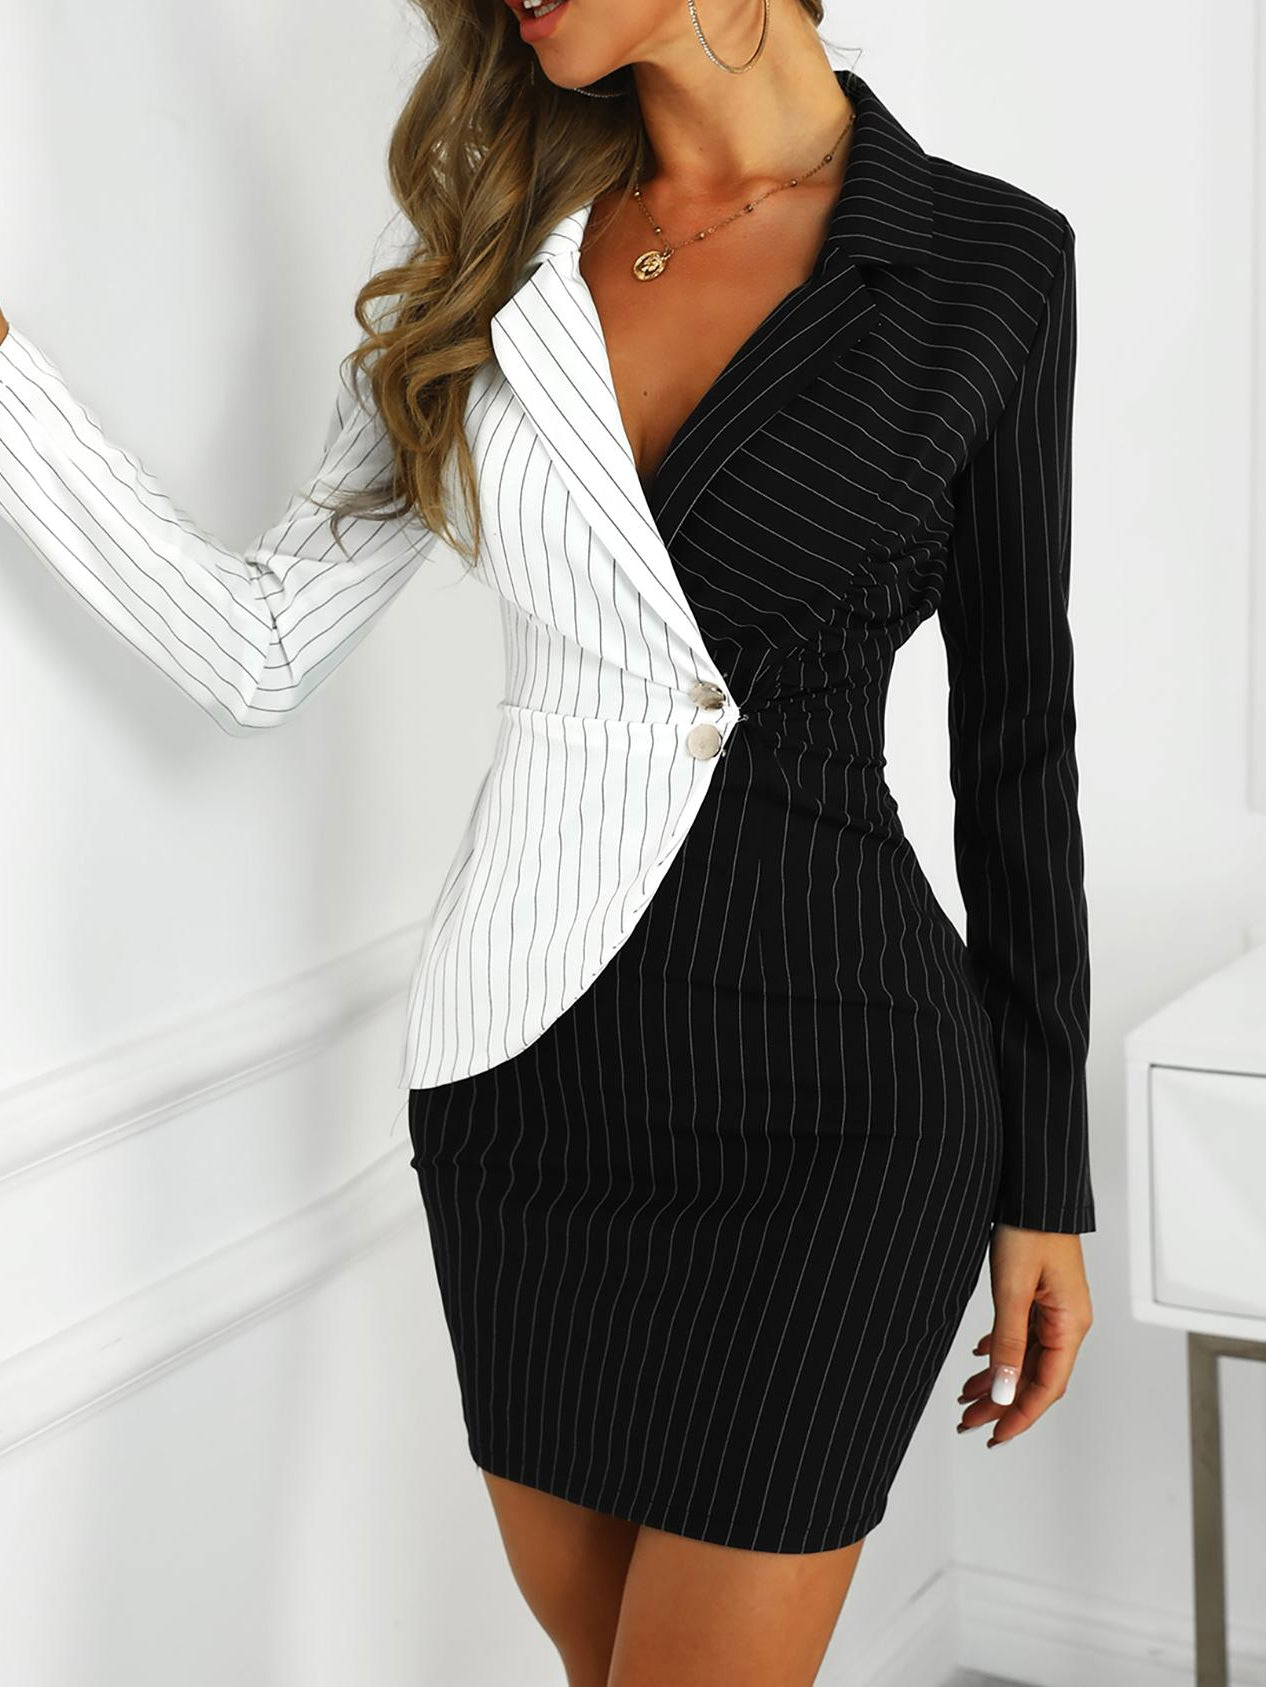 Slim Contrast Color Striped Formal Dresses